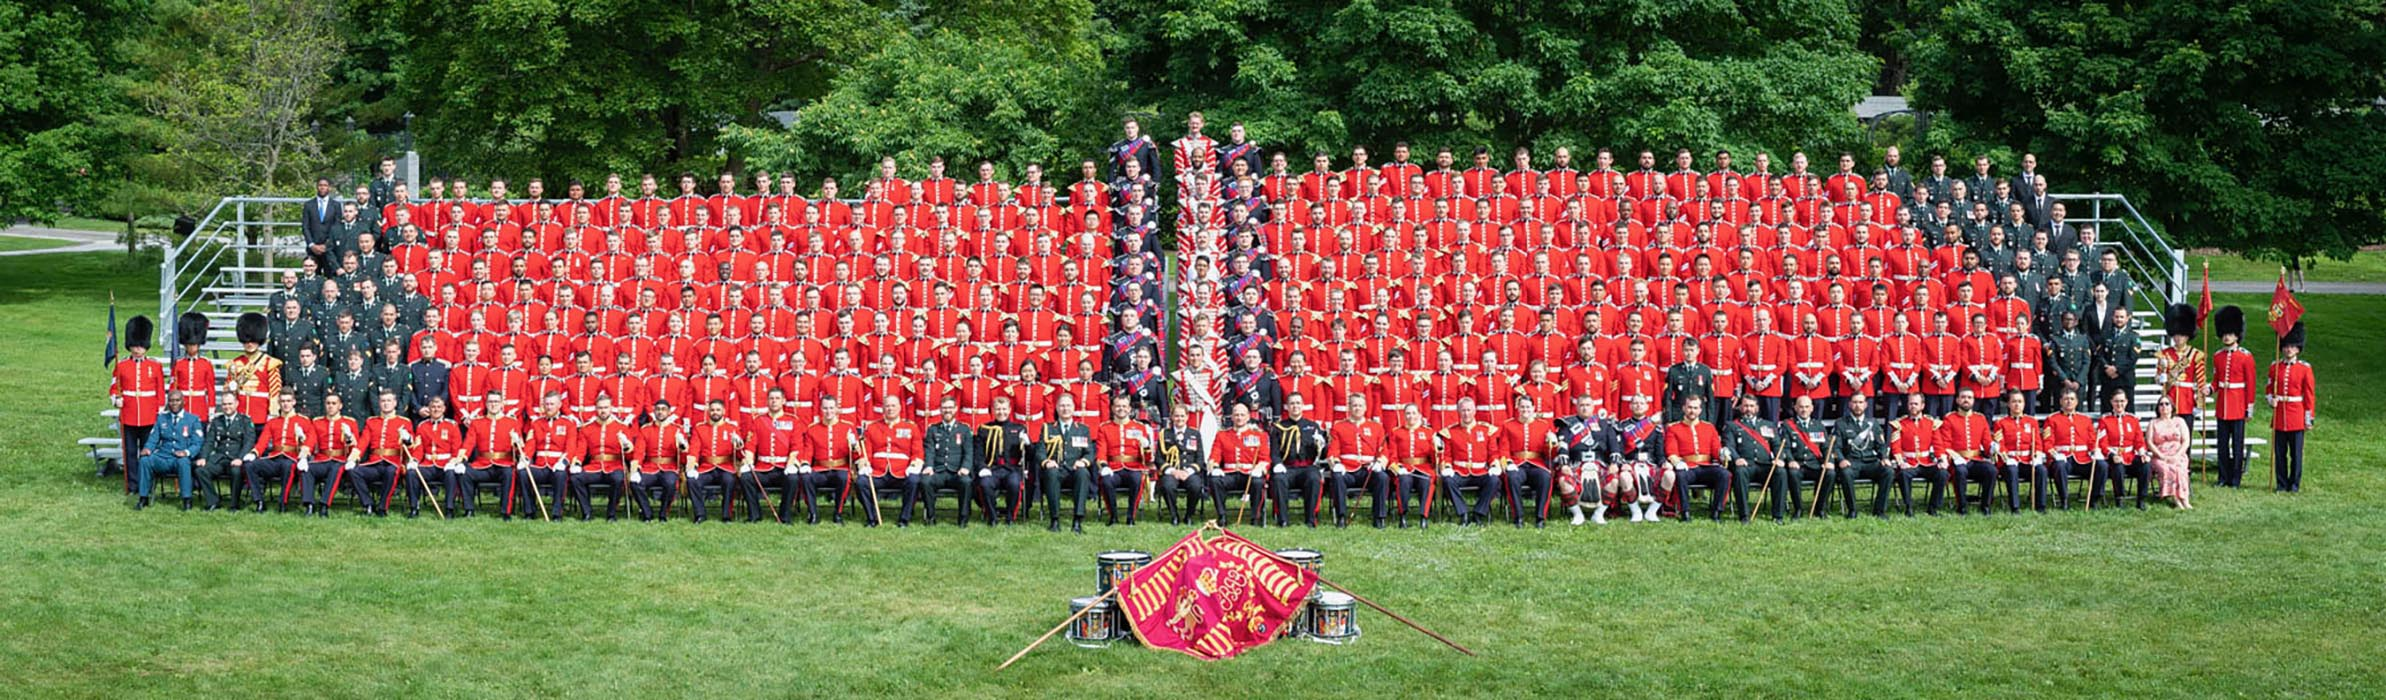 Group photo of the 360 members of the 2019 Ceremonial Guard taken at Rideau Hall in Ottawa, Ontario on June 21, 2019.  Photo: Sergeant Johanie Maheu, Canadian Forces Support Unit (Ottawa). ©2019 DND/MDN Canada.